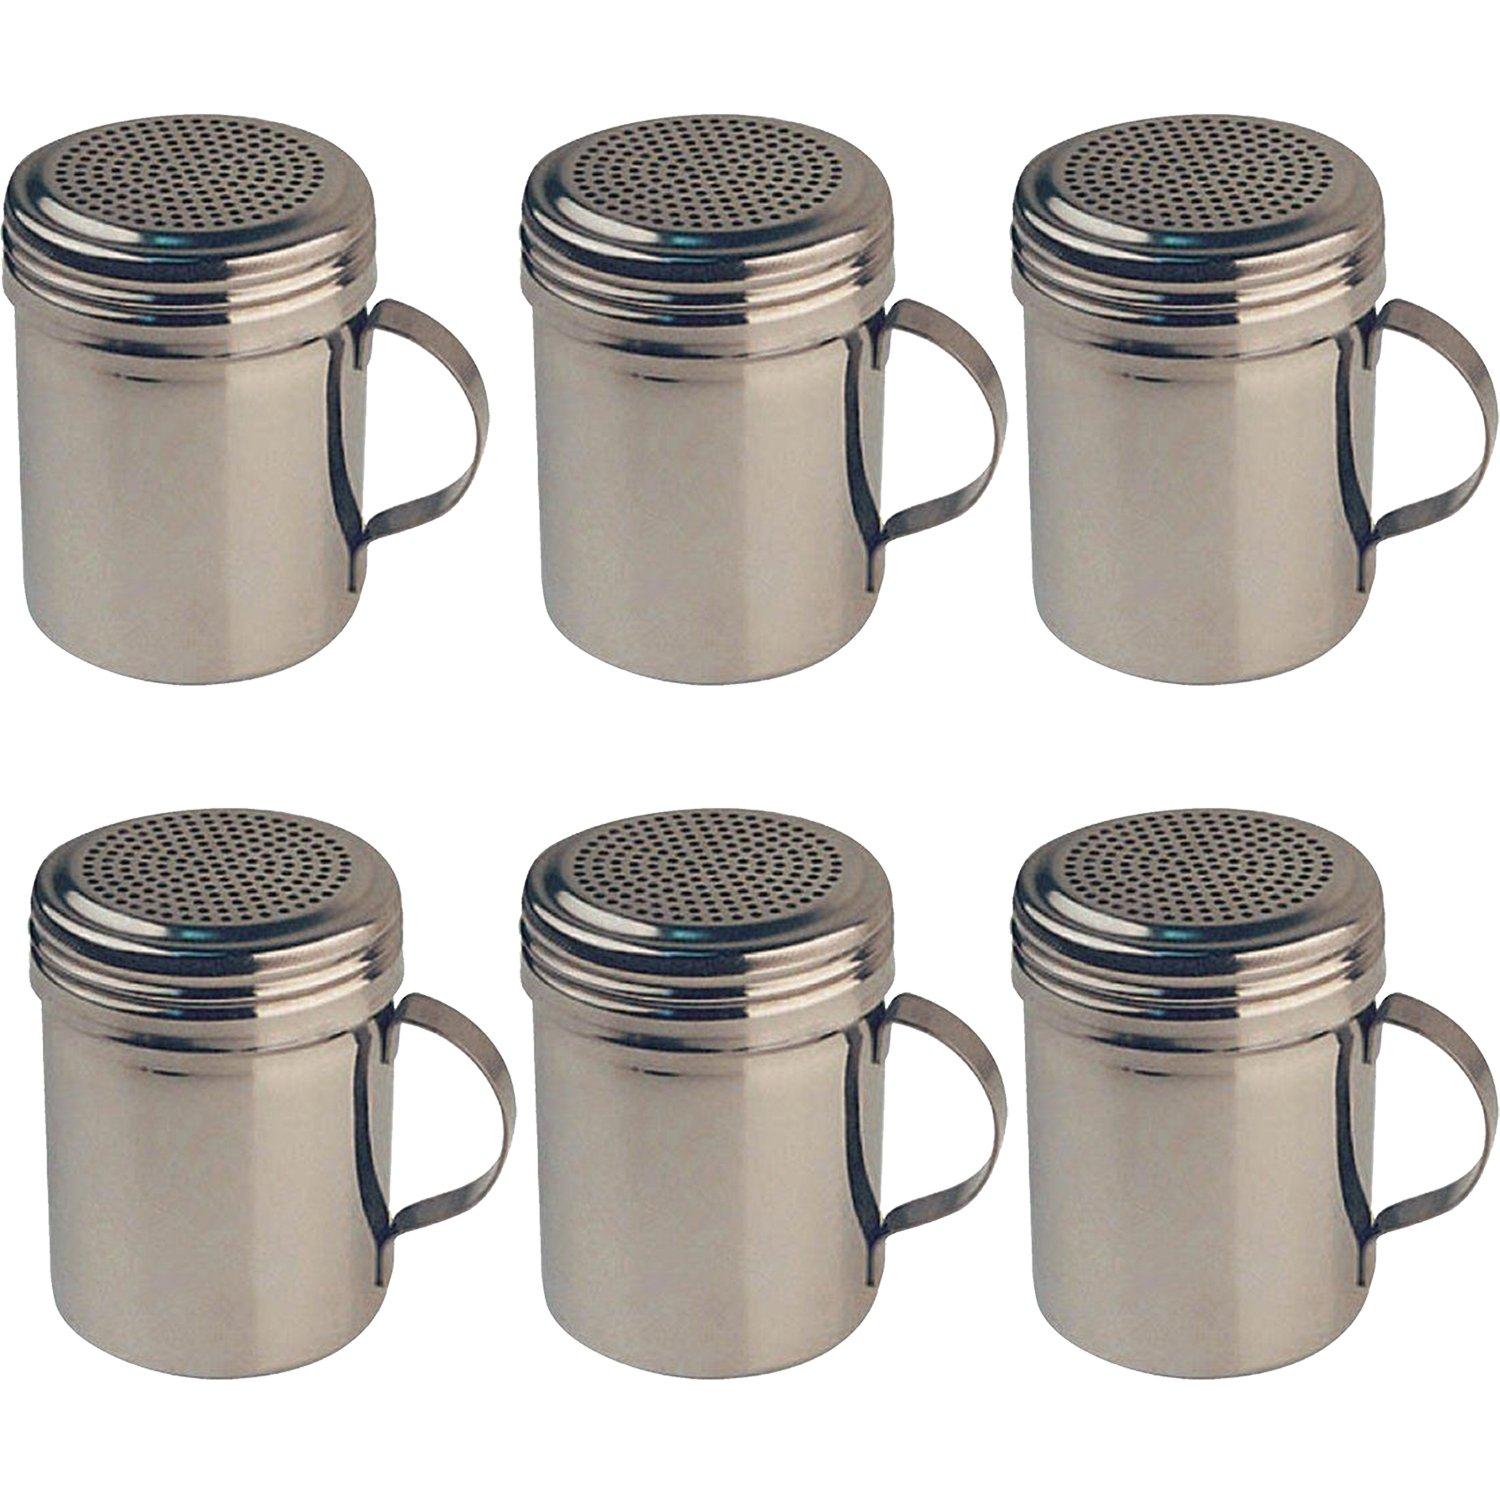 Winware Stainless Steel Dredges 10-Ounce with Handle, Set of 6 by Winware by Winco